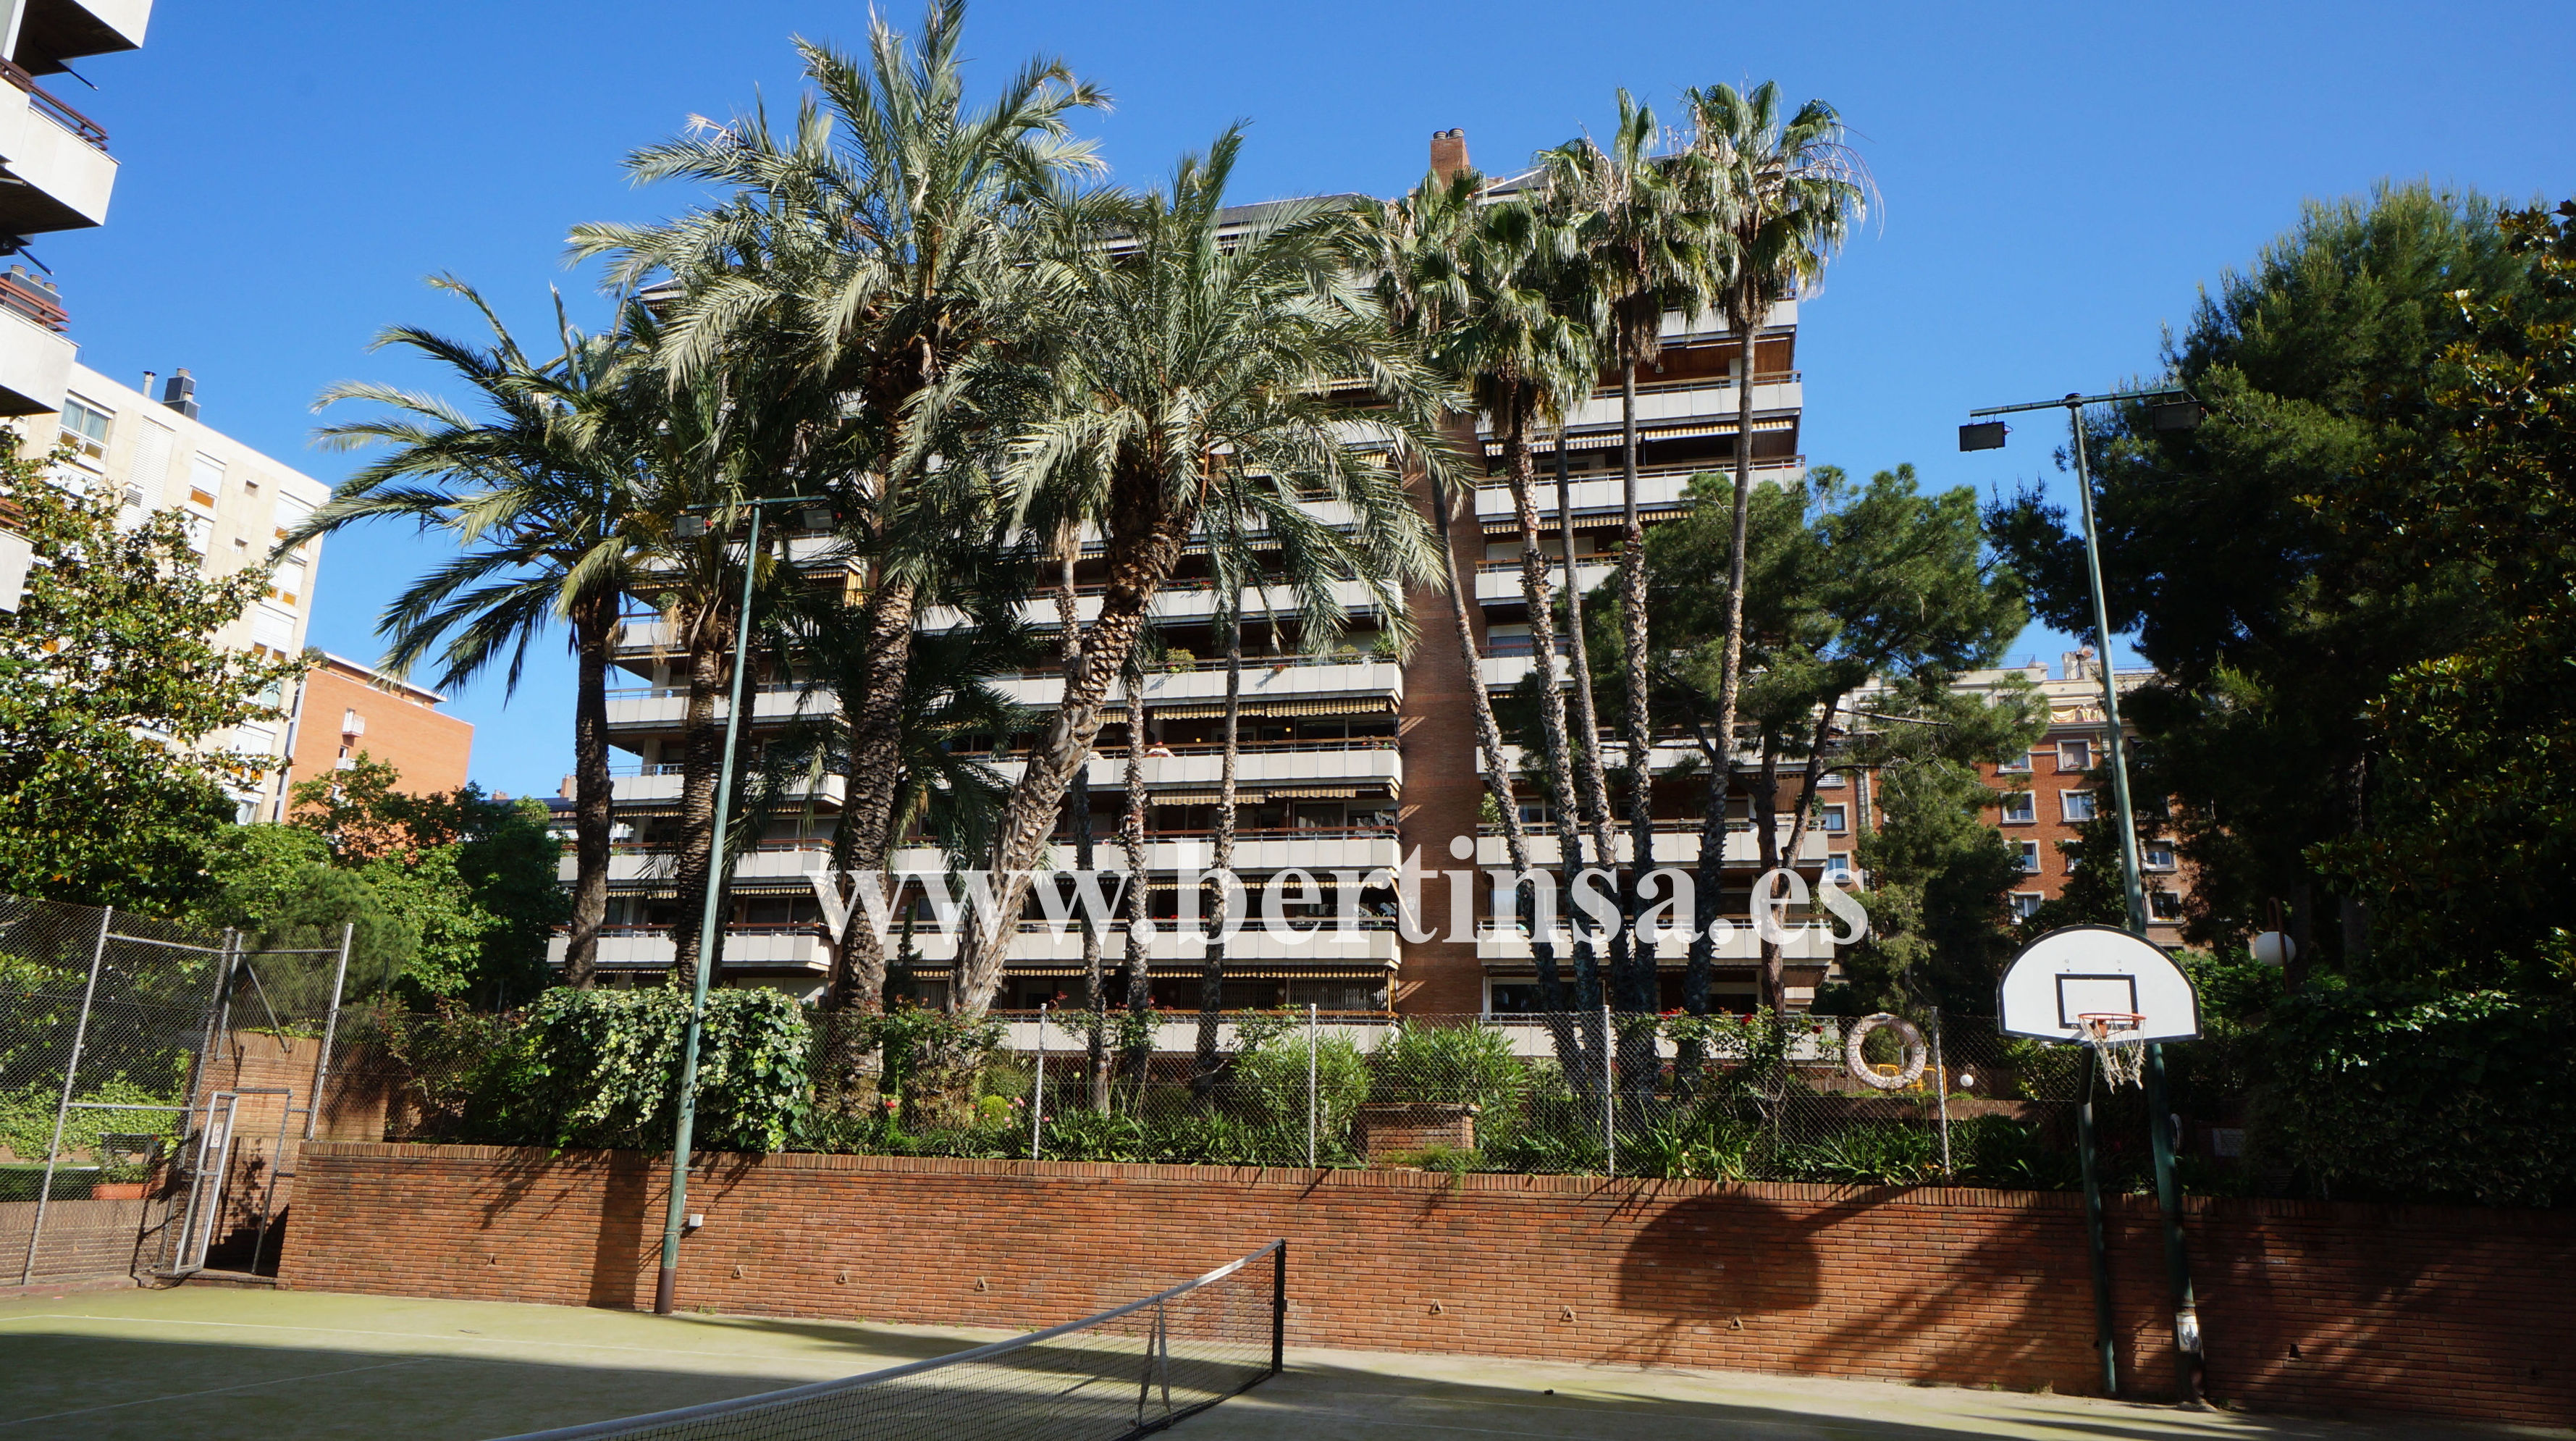 Vivienda en Carrer Doctor Ferran 1.350.000€: Visita nuestras inmuebles de Bertinsa Real Estate, Investments & Sale Services